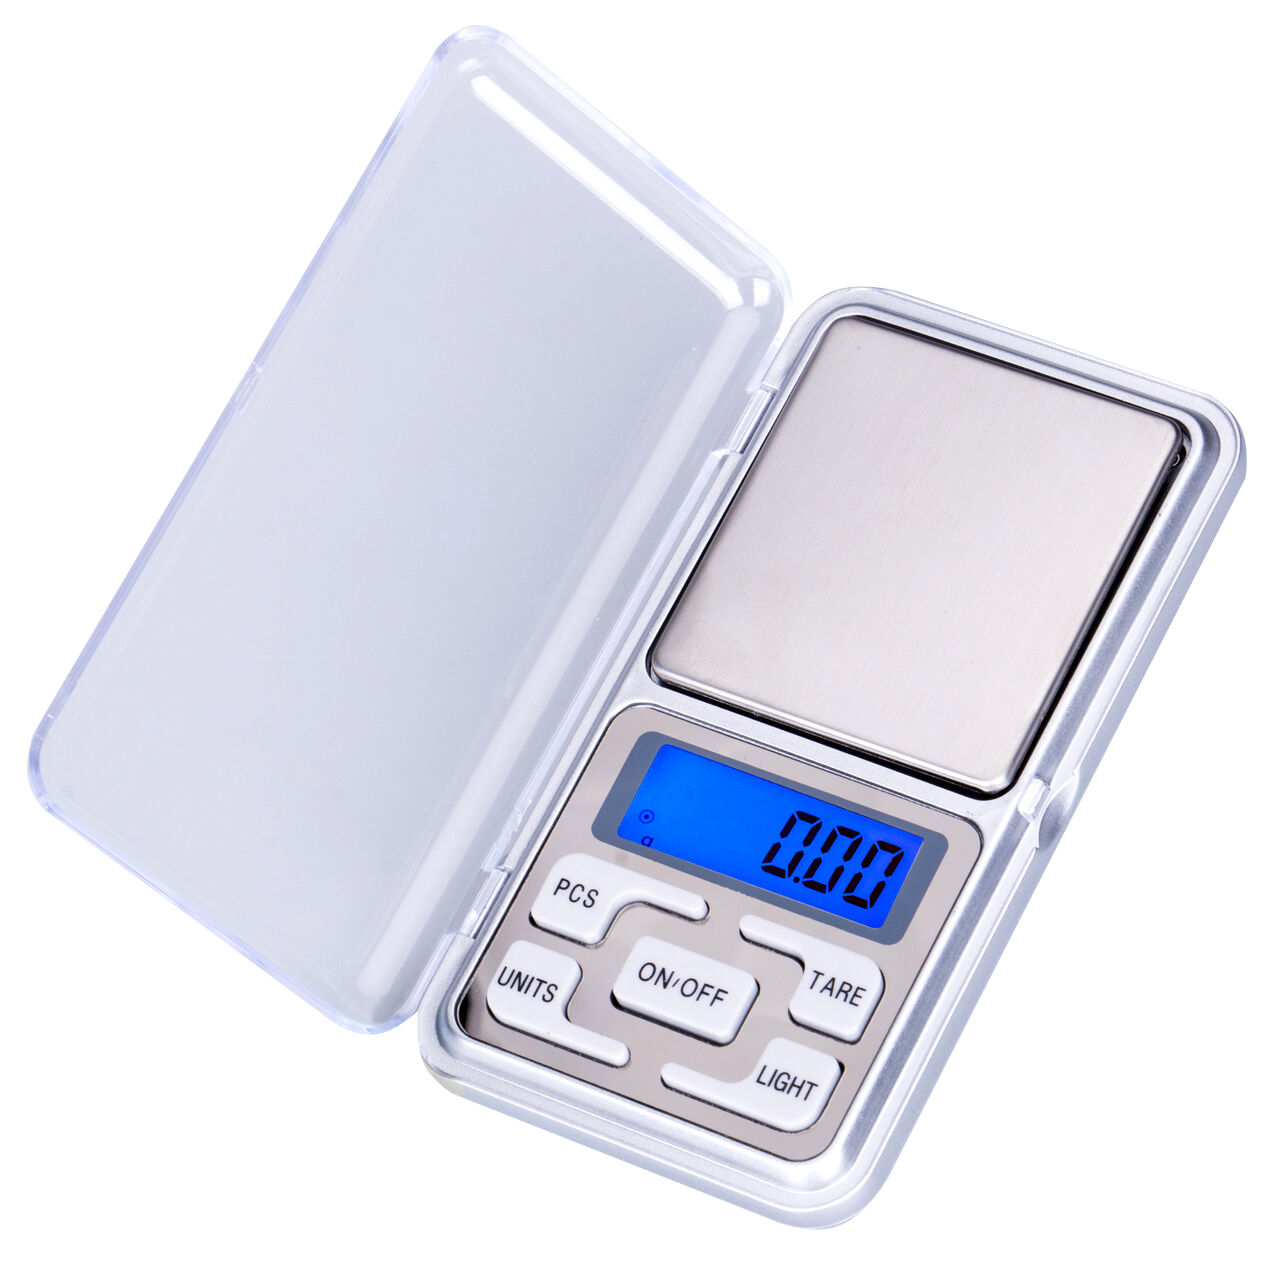 500g x <font><b>0.01g</b></font> 0.1g Mini Digital Electronic Pocket Weight LCD <font><b>Gram</b></font> Jewellery <font><b>Scale</b></font> image